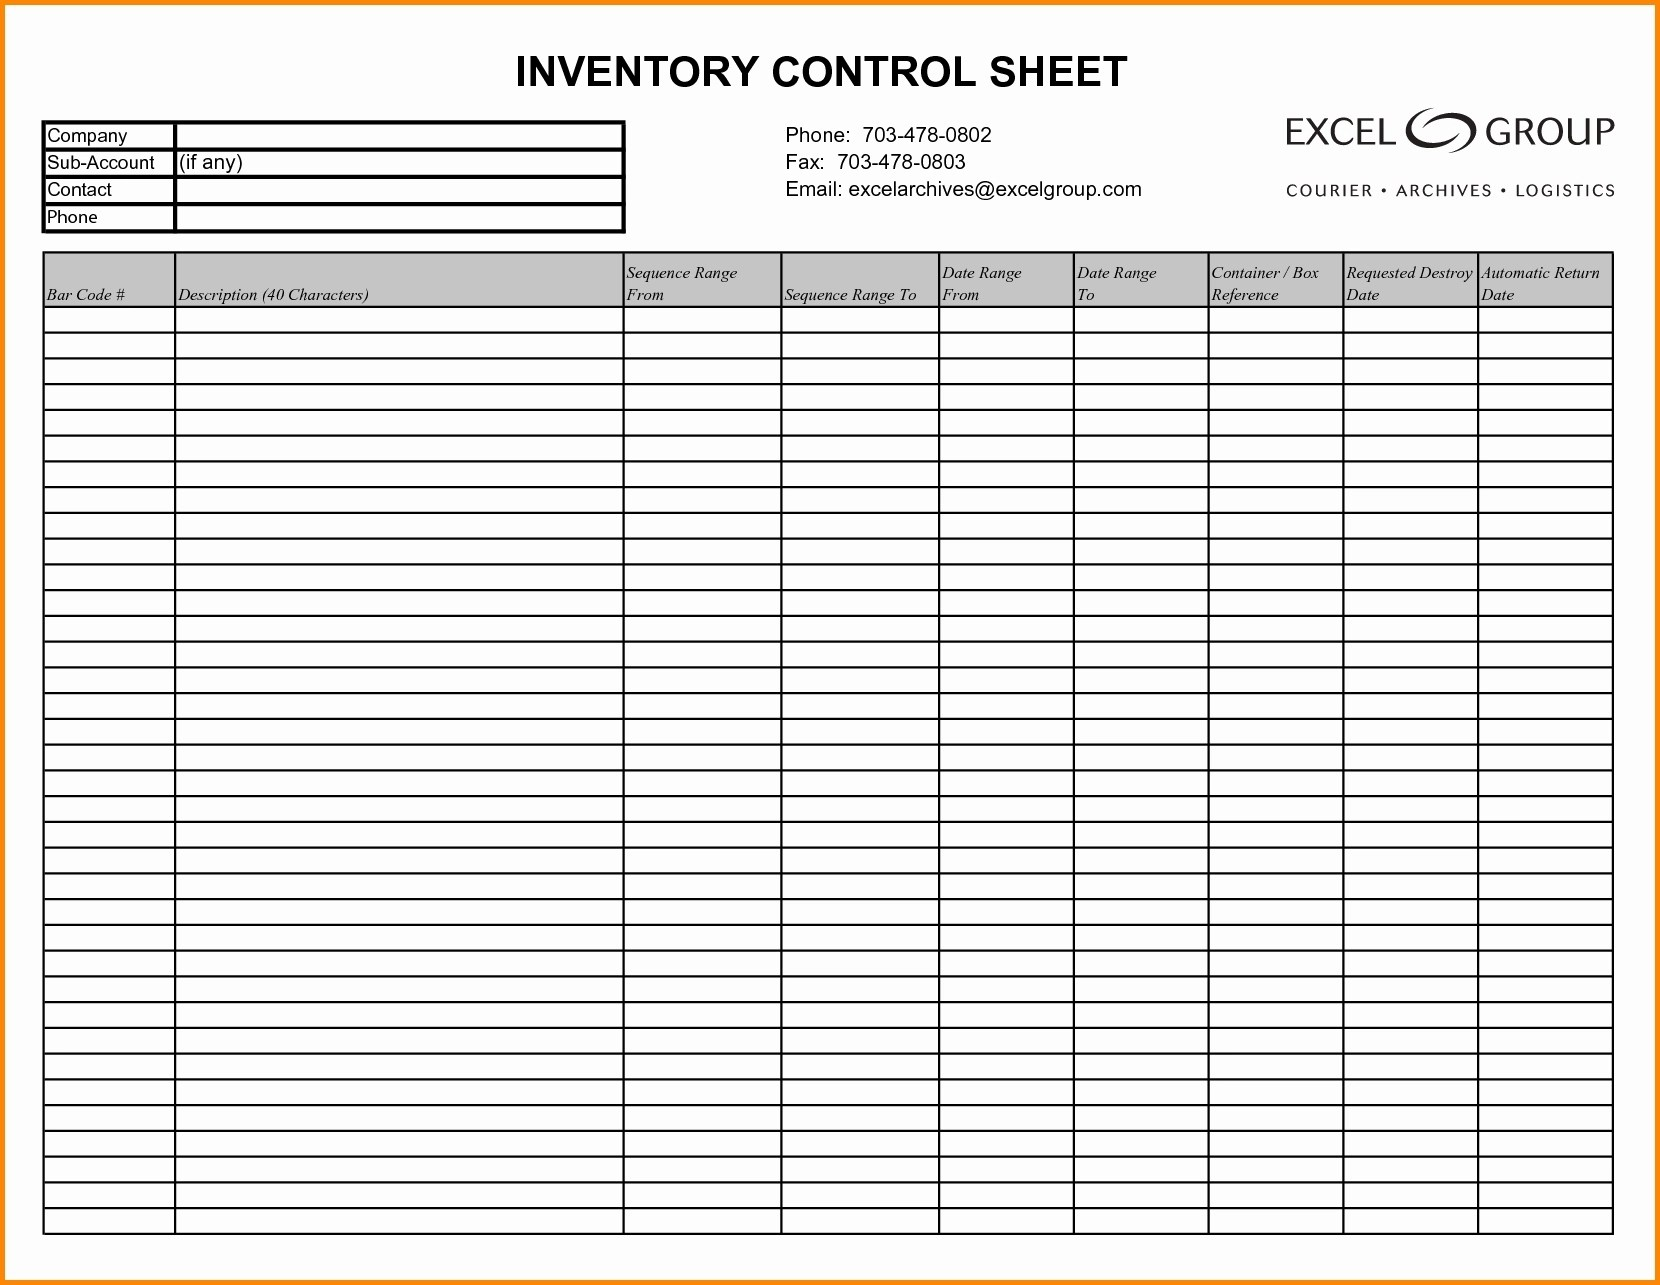 Inventory Control Sheet Sample